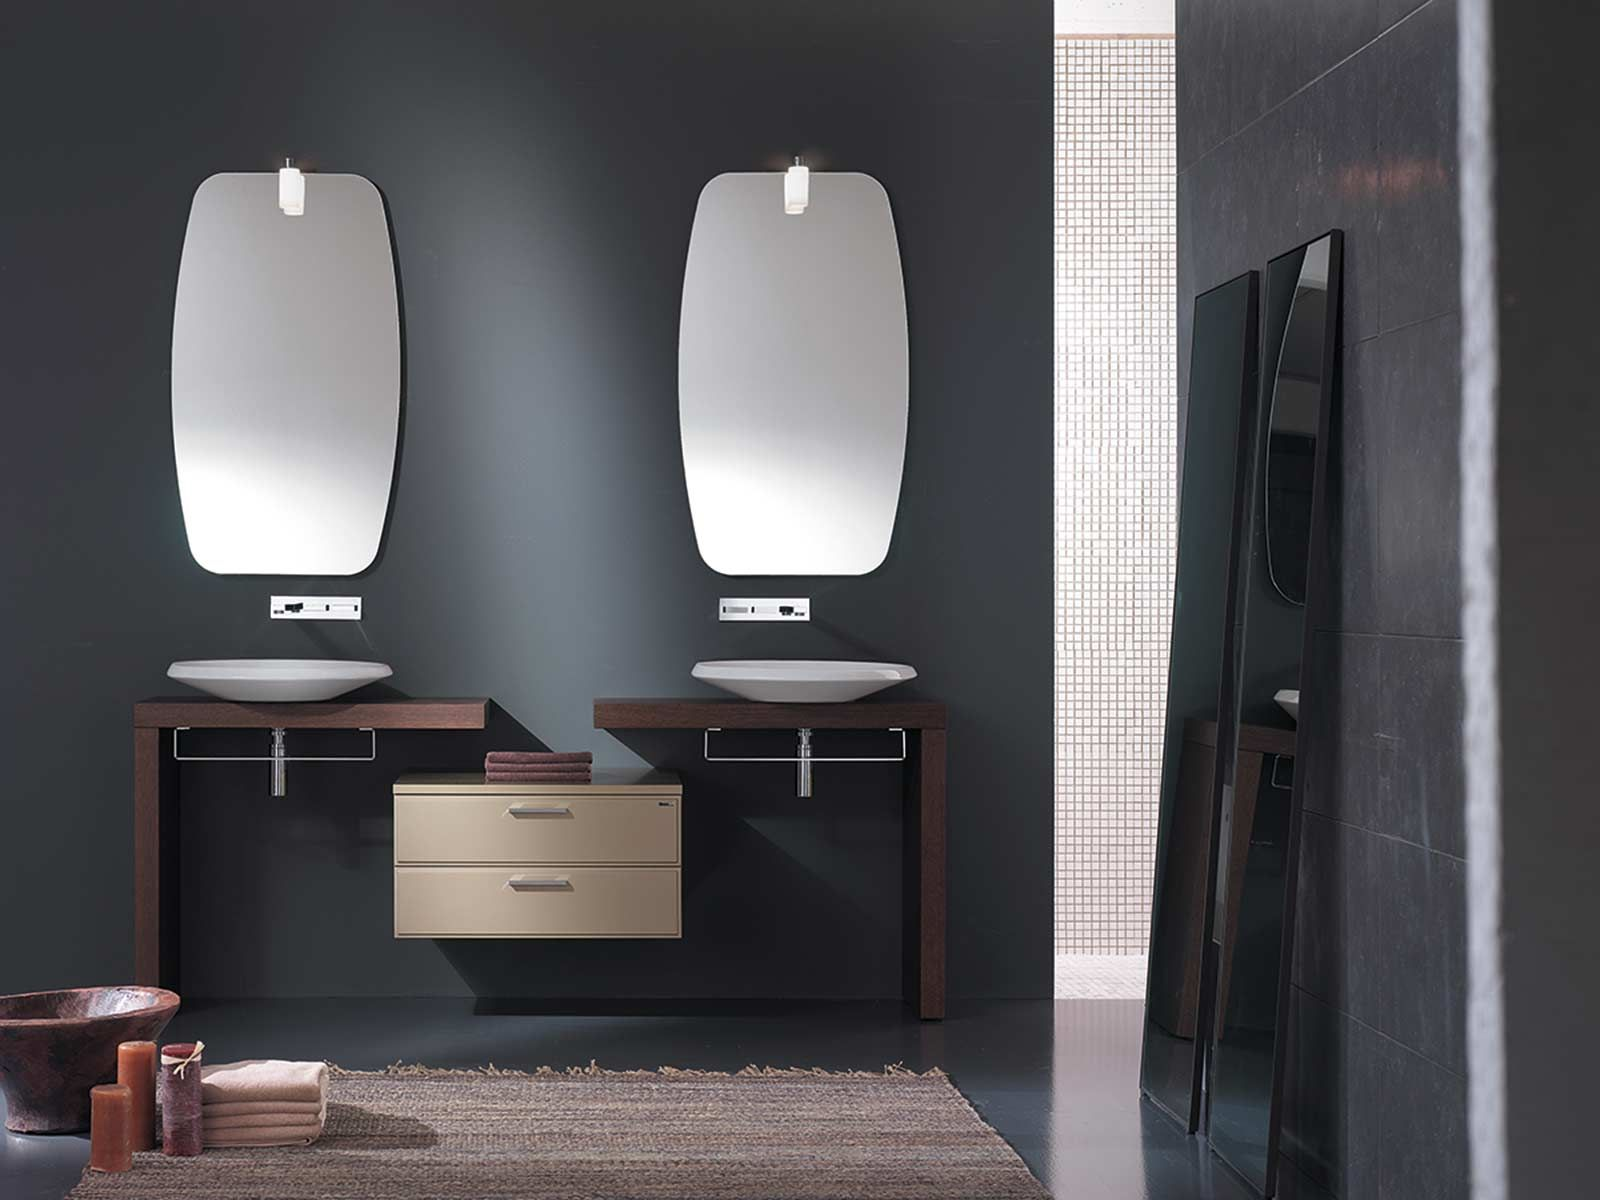 Bagno Invalidi ~ Best bagno images s mirrors bathroom and